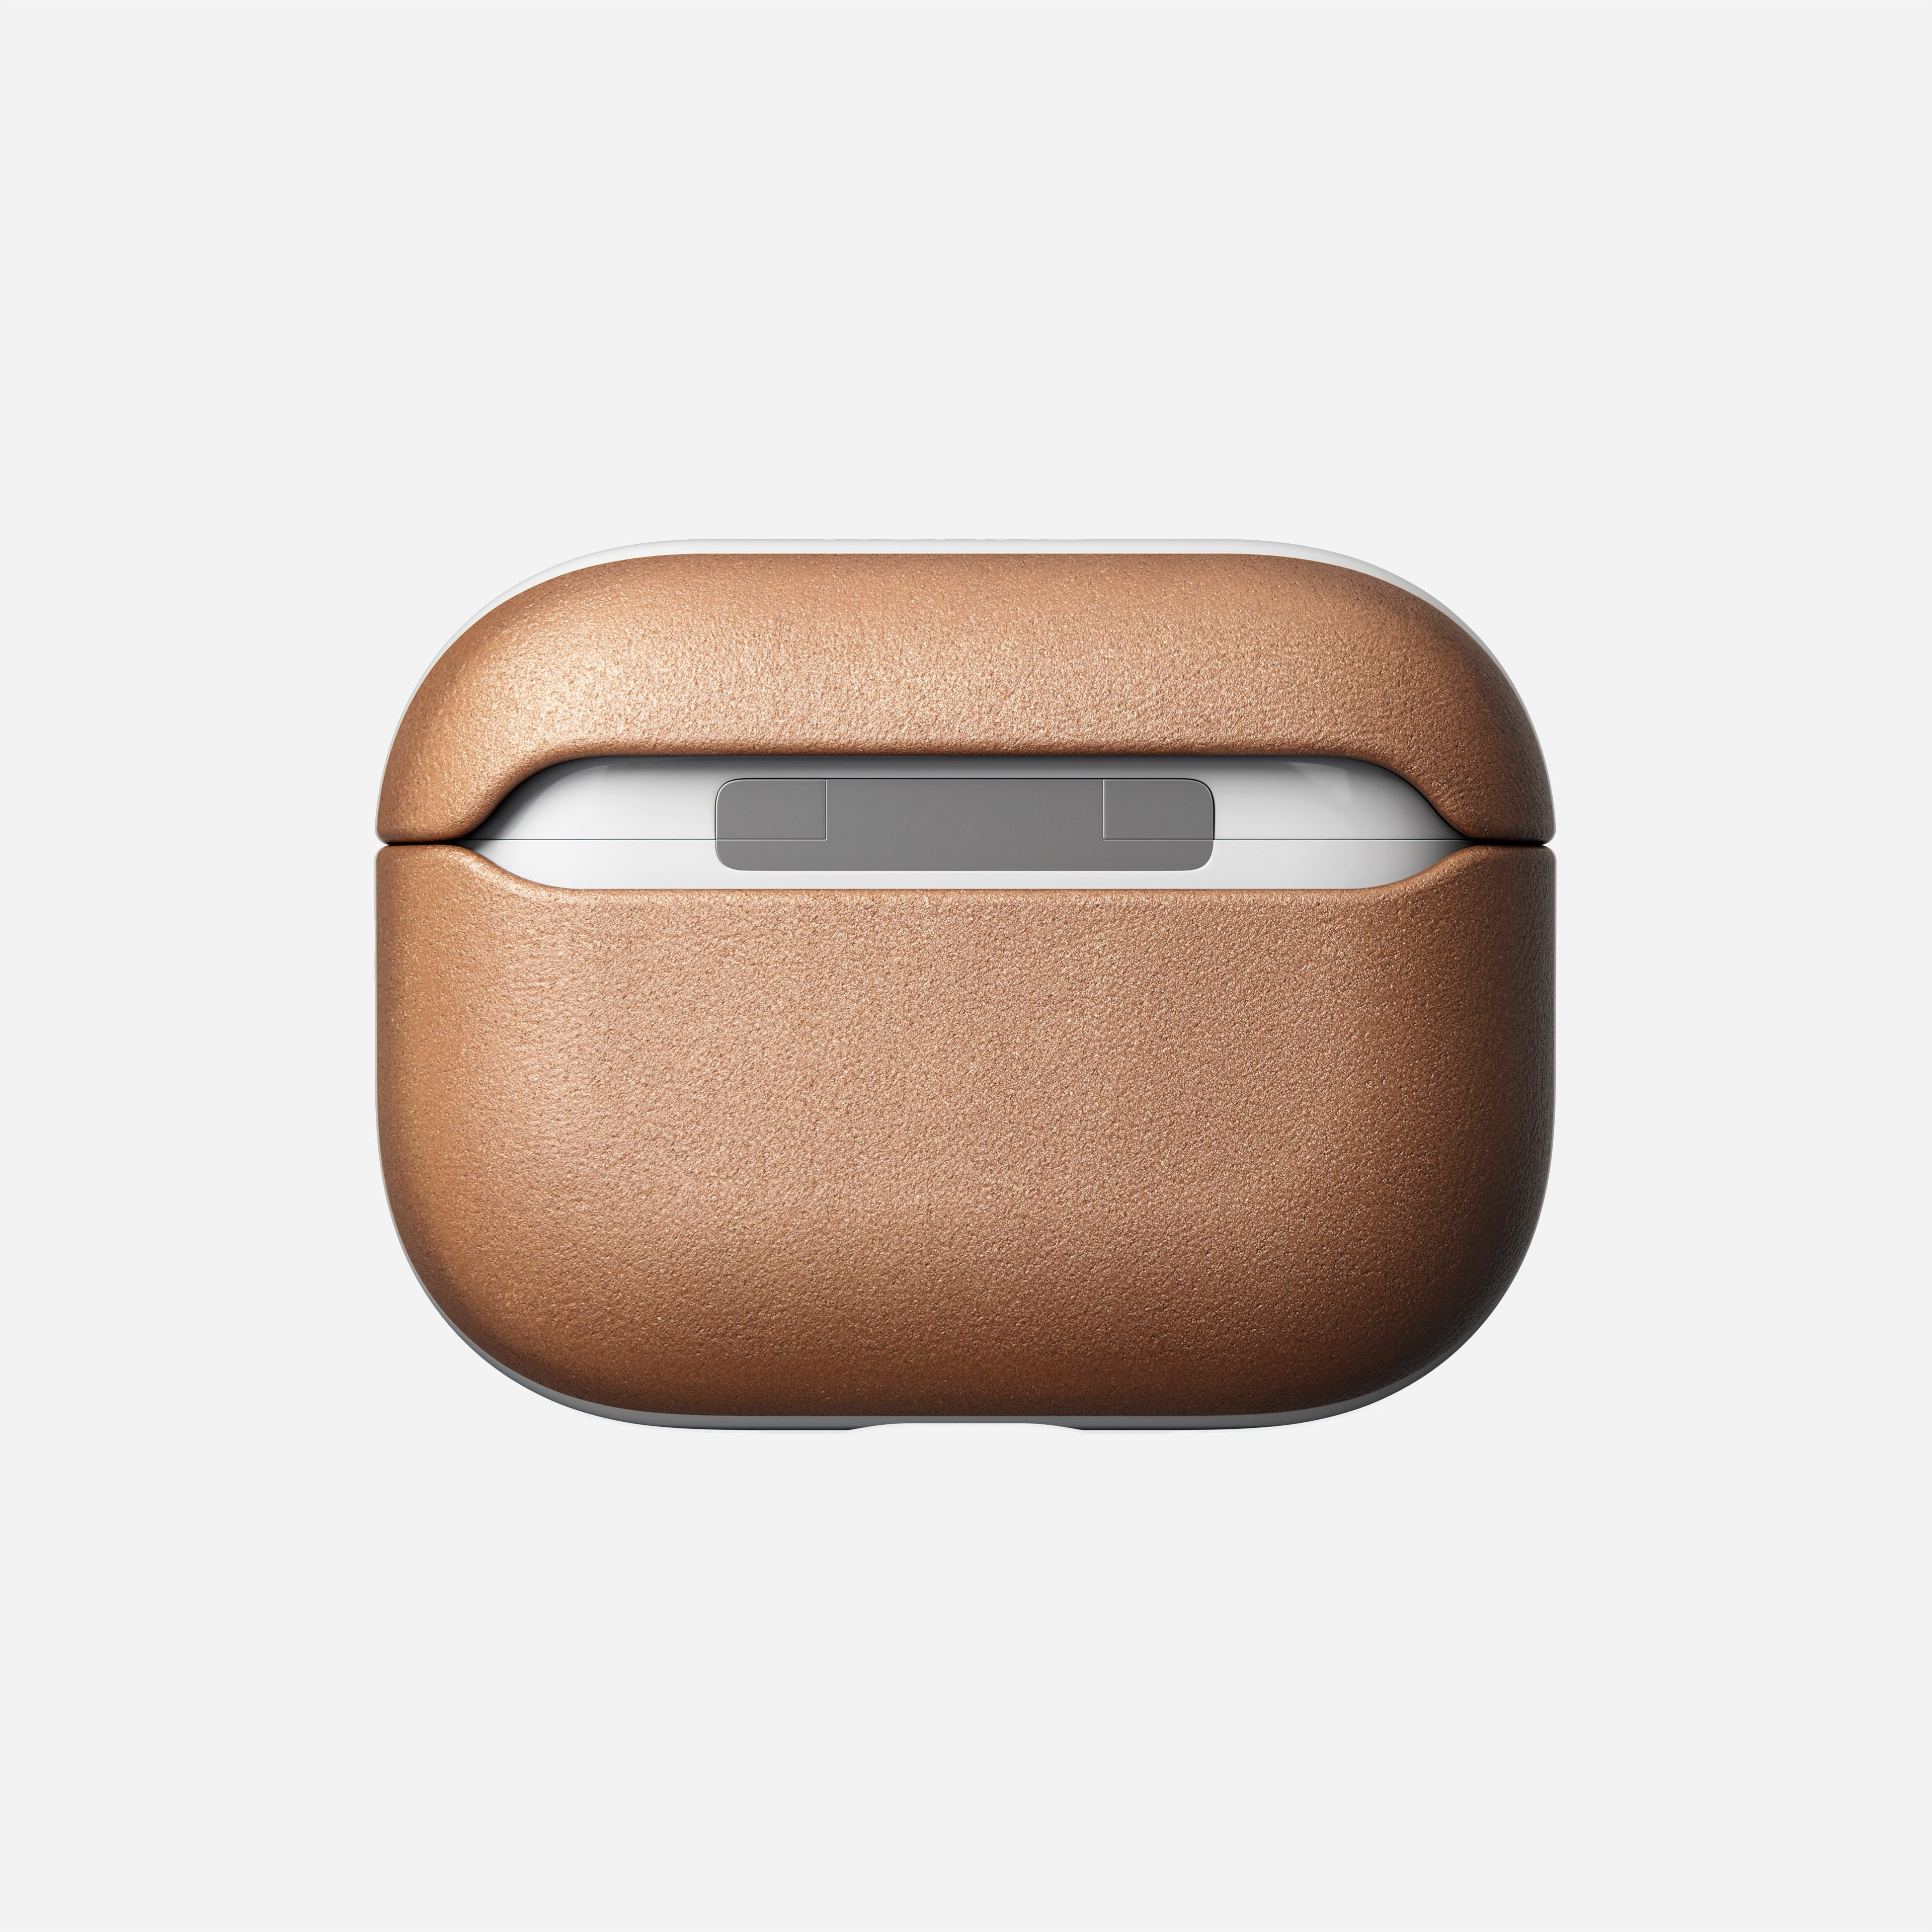 Rugged case airpods pro natural leather